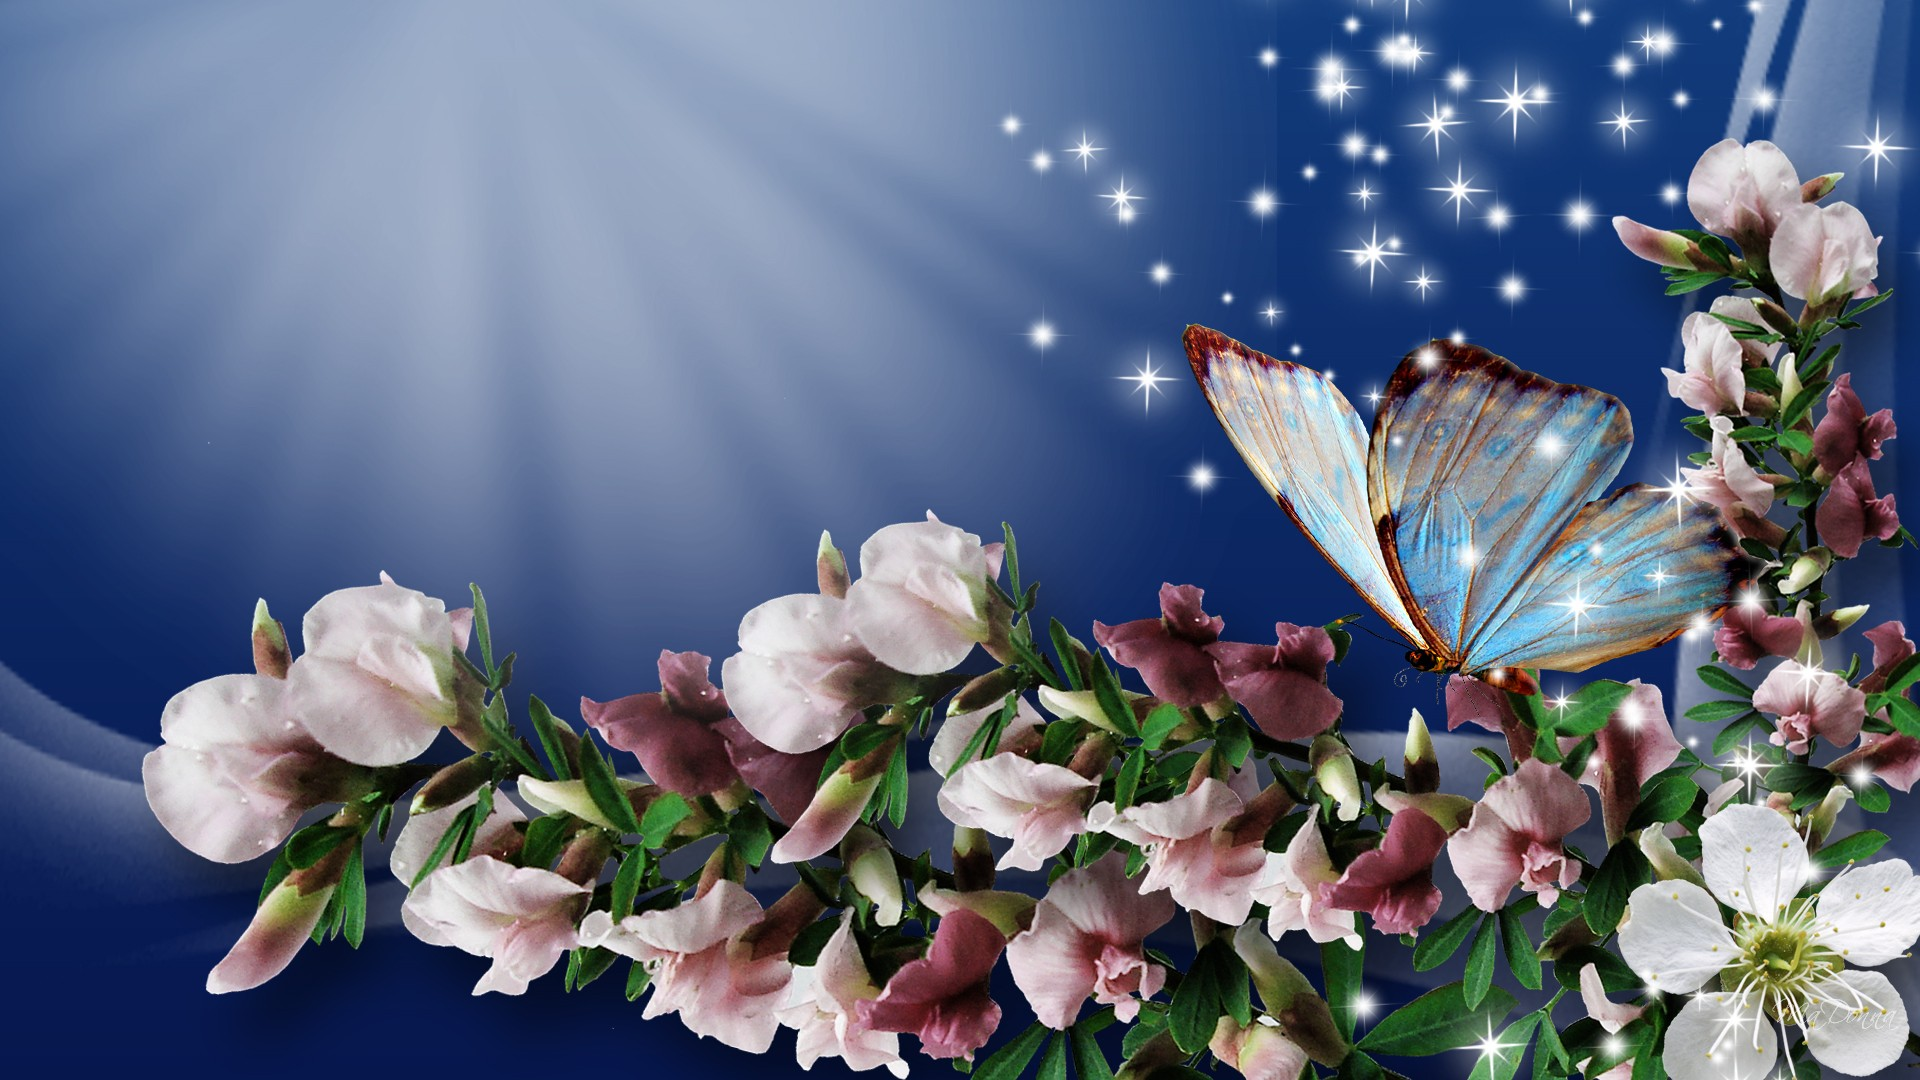 The Spring Wallpapers Category Of Hd Desktop 1920x1080